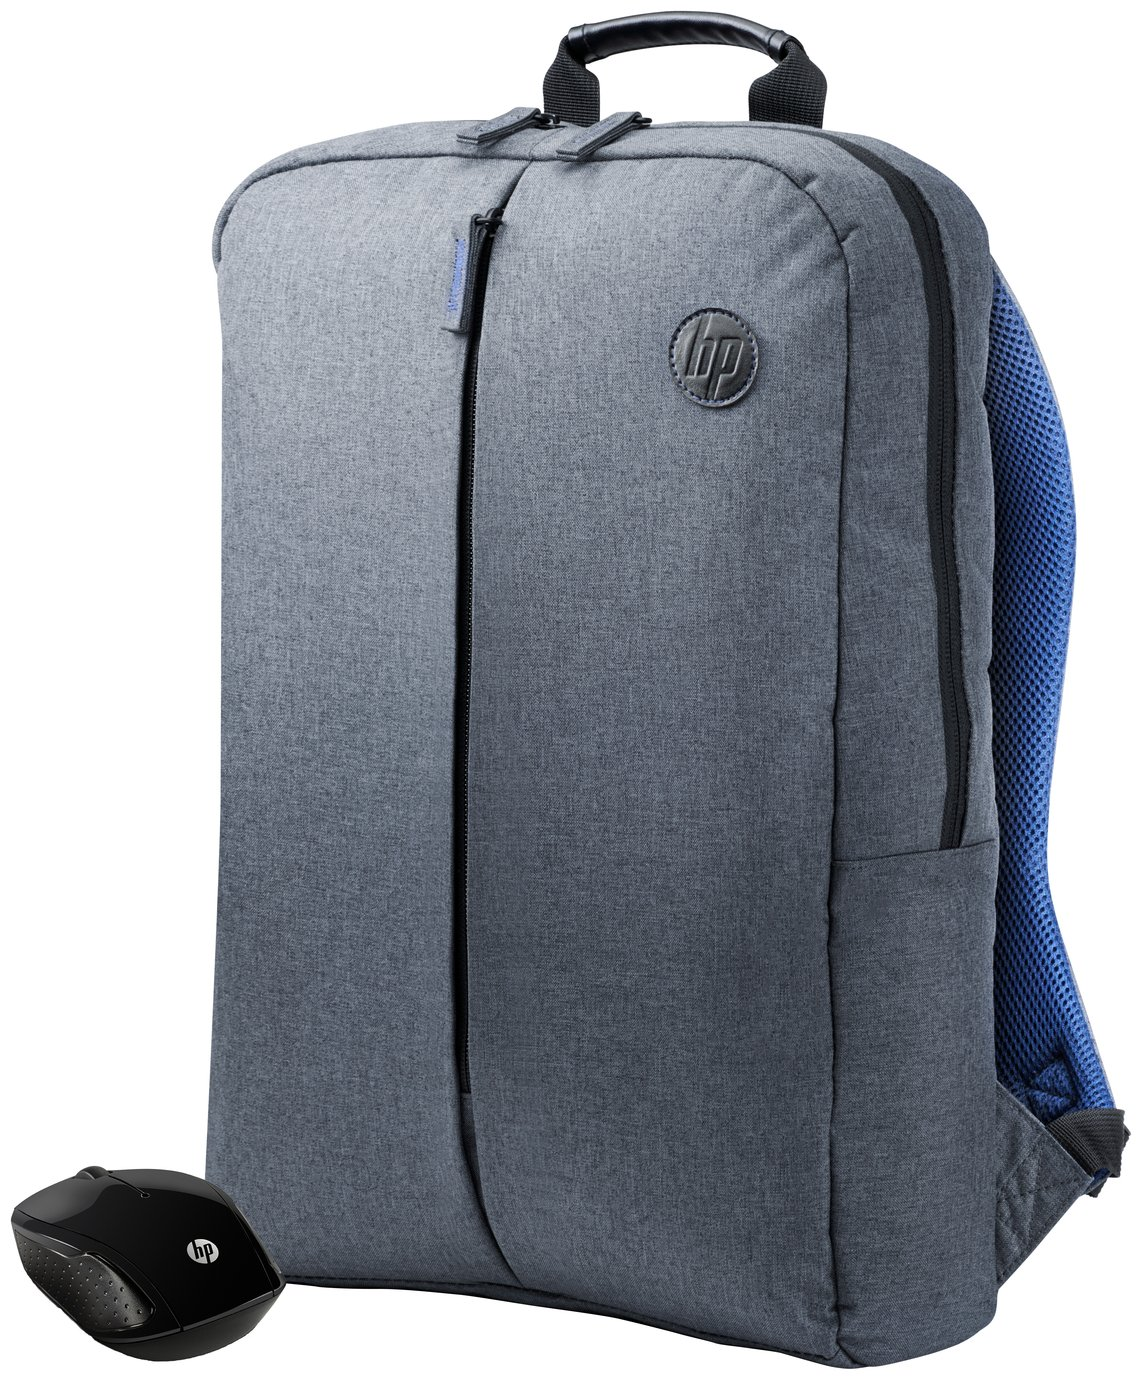 HP - 15.6 Inch - Laptop Backpack and - Wireless Mouse from HP